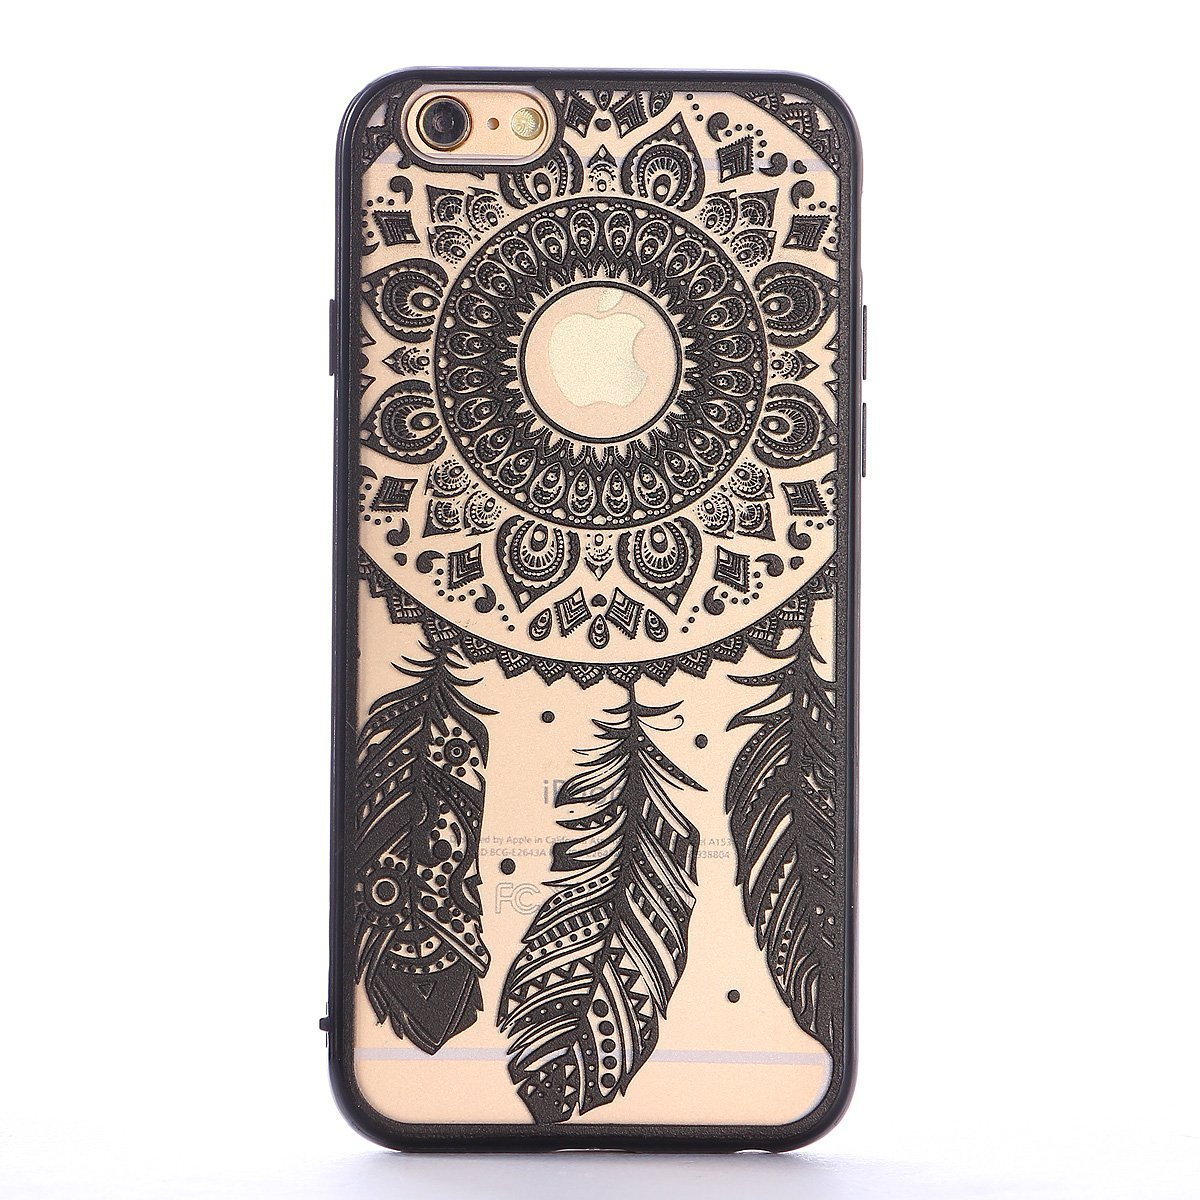 iPhone 6/6S Plus 5.5inch Case,Aroko Baroque Retro Court Lace Pattern Texture Hard Plastic Clear Case for Apple iPhone 6 Plus 5.5inch Damask Black